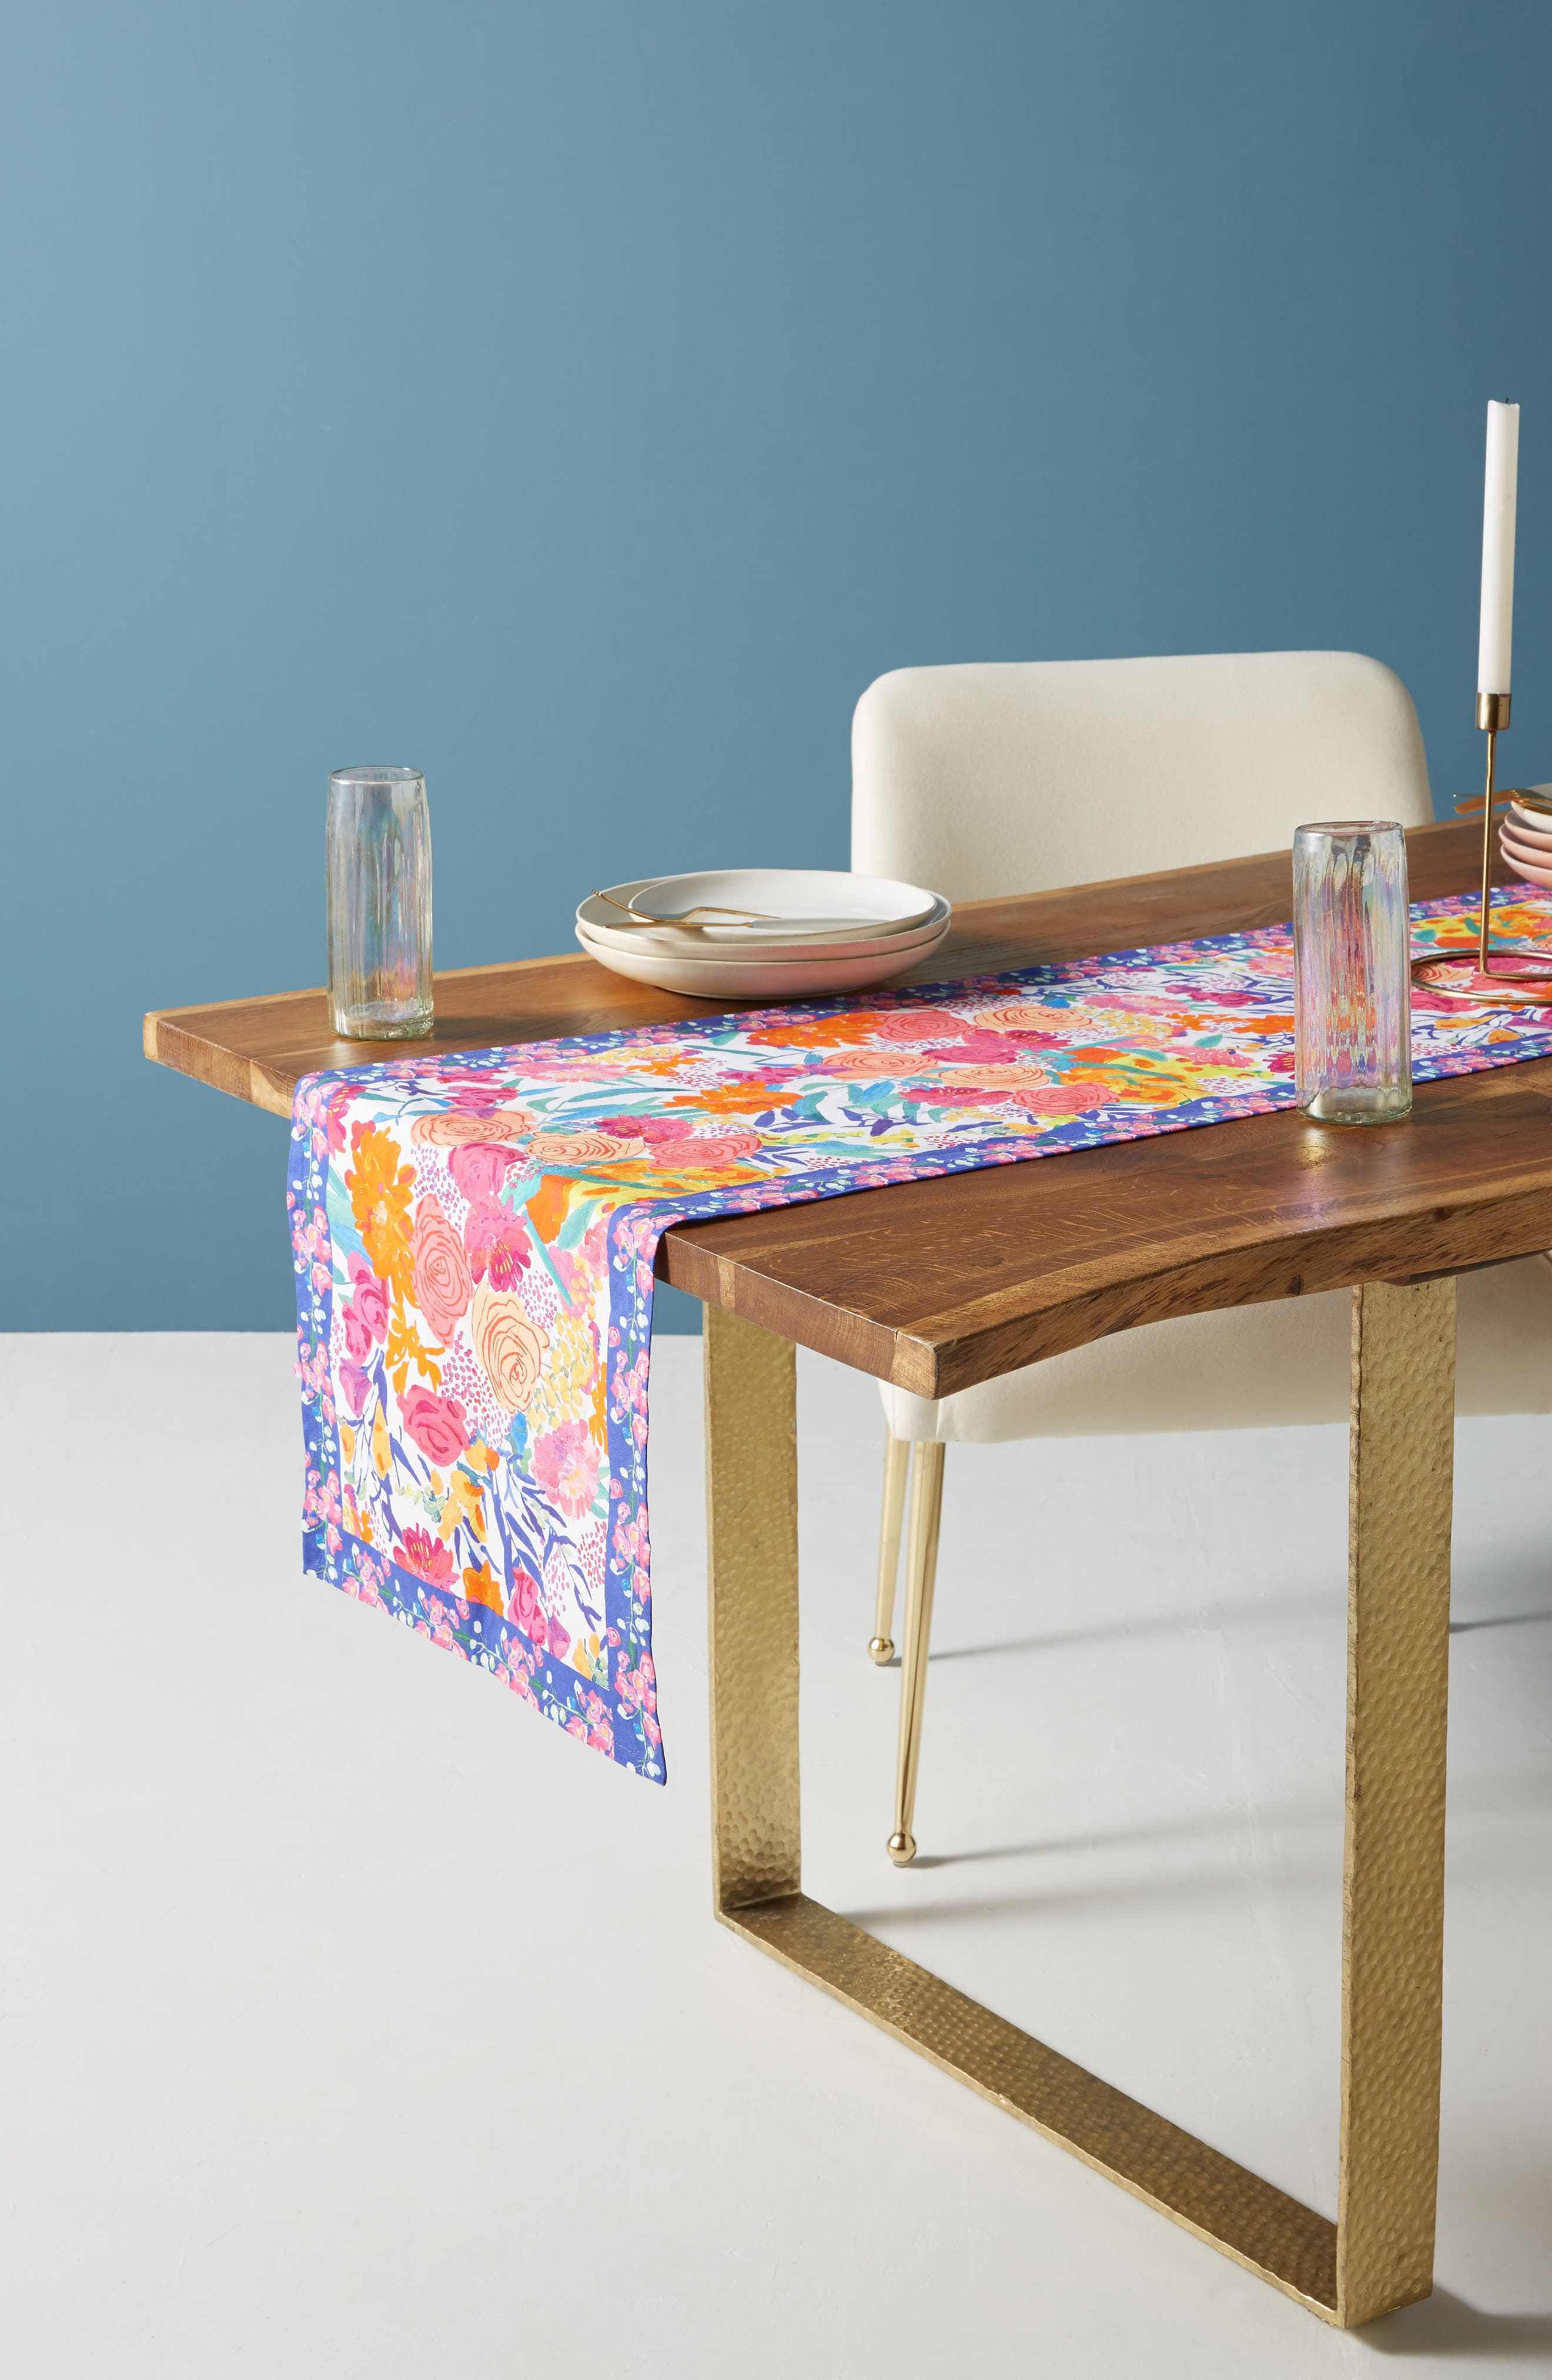 Anthropologie Paint + Petals Table Runner